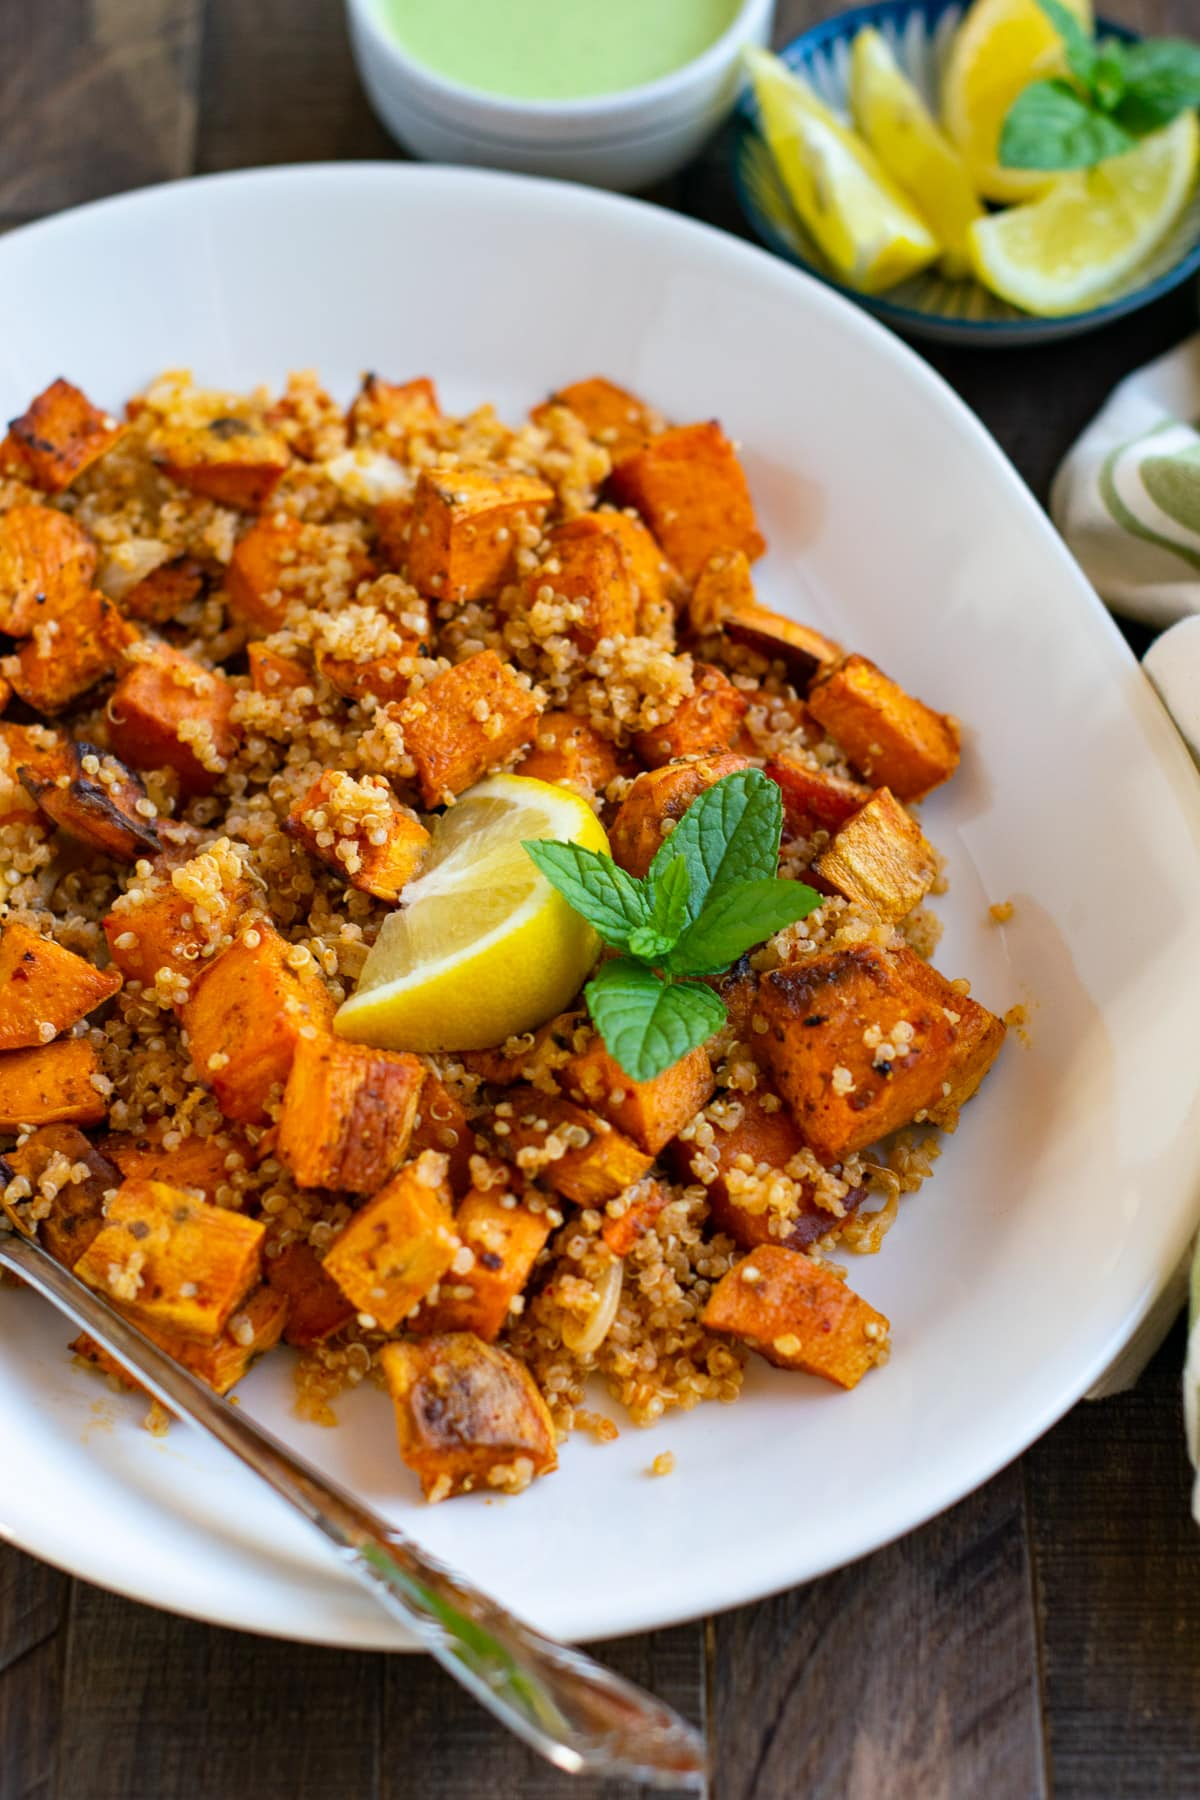 Quinoa and sweet potato salad in a white plate